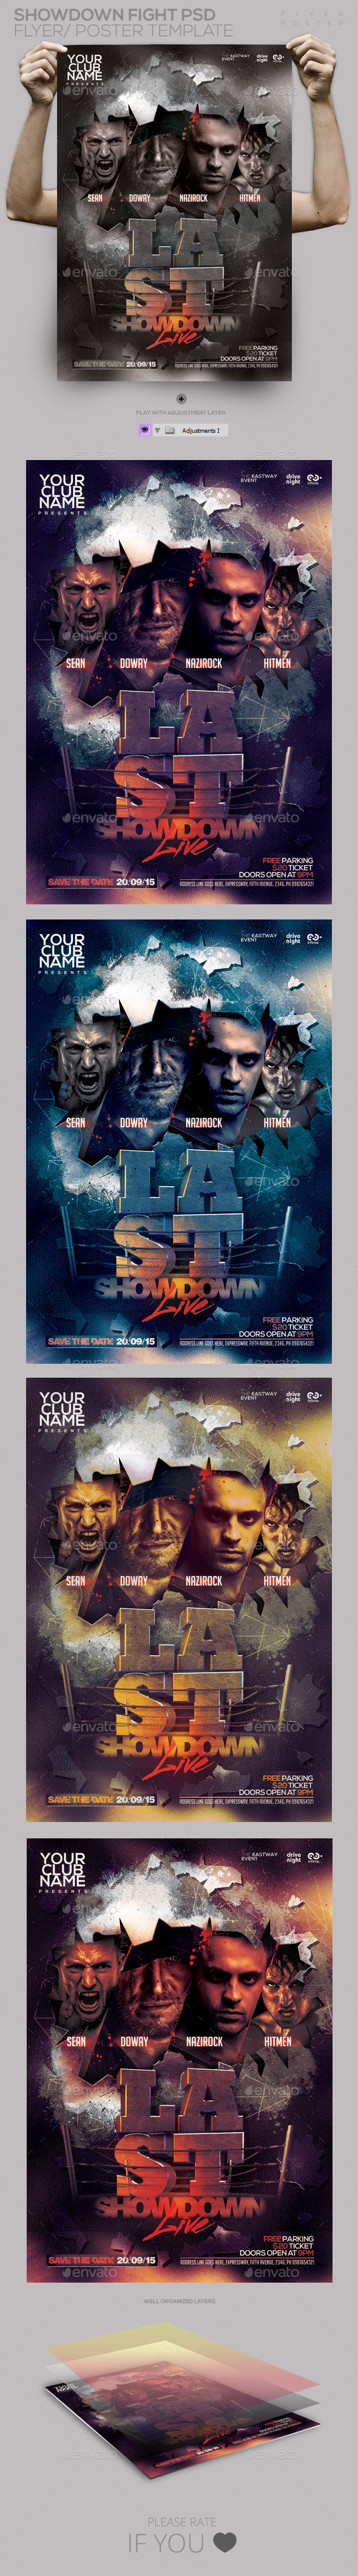 GraphicRiver Showdown Fight PSD Flyer Poster 11252809